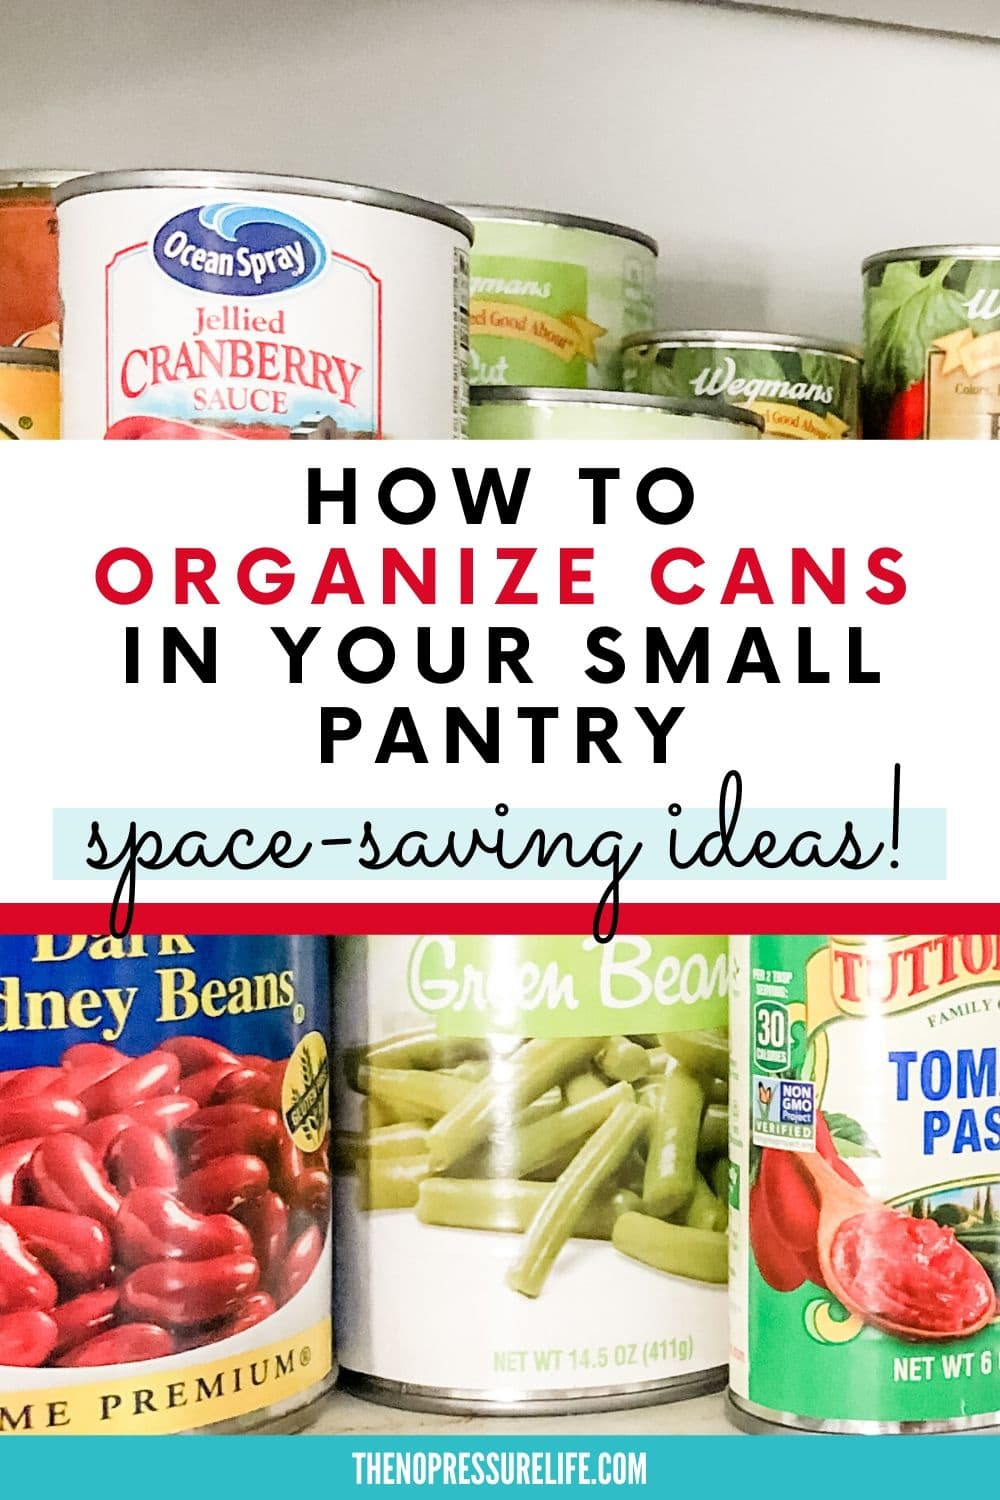 Canned food on shelf with text overlay - How to Organize Cans in Your Small Pantry: Space-Saving Ideas